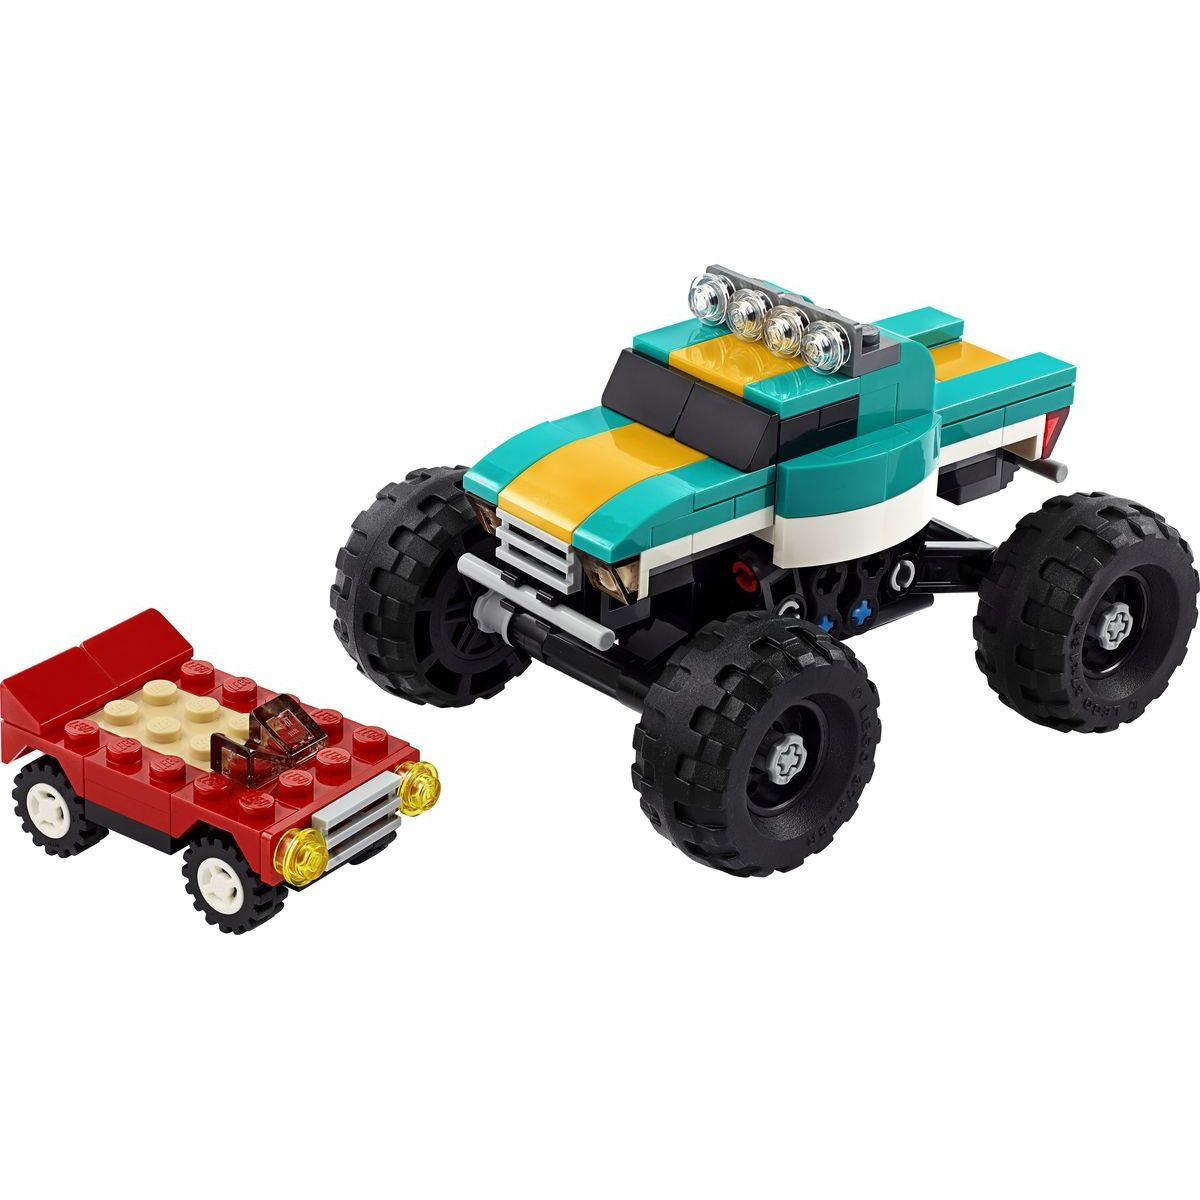 LEGO Creators 31101 Monster truck